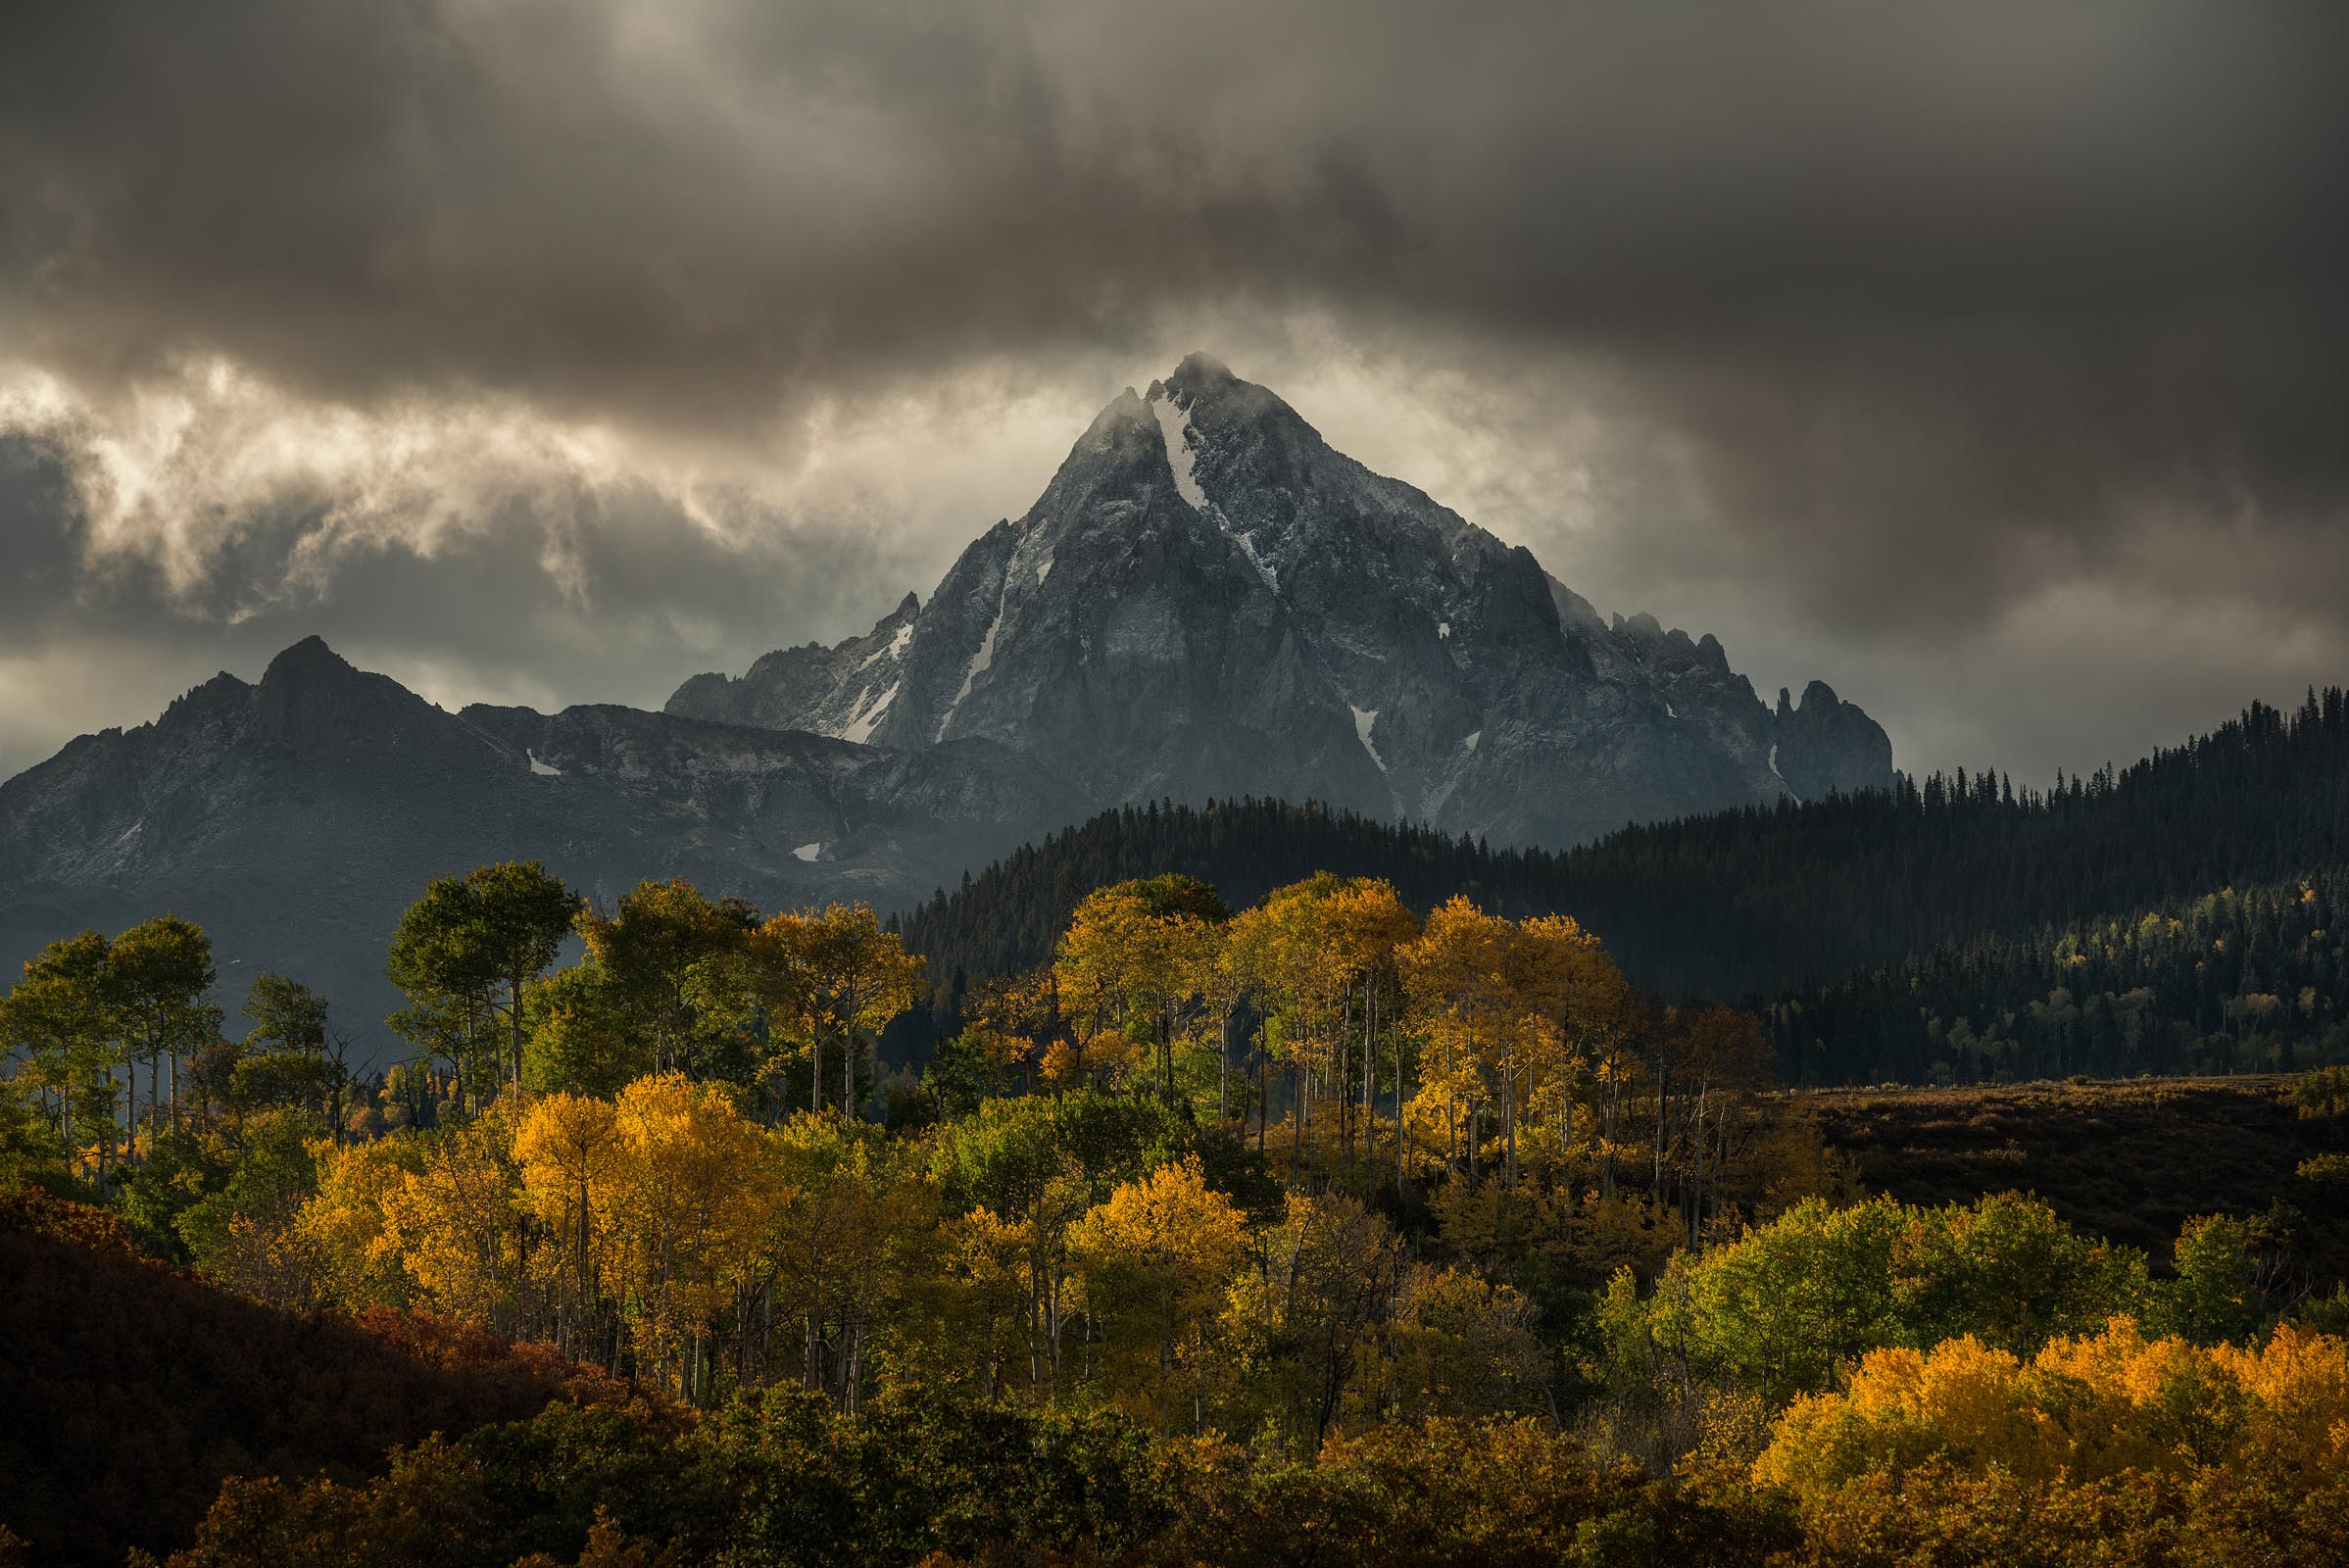 Photograph of Mt Sneffels in Ouray, Colorado by Brent Goldman Photography